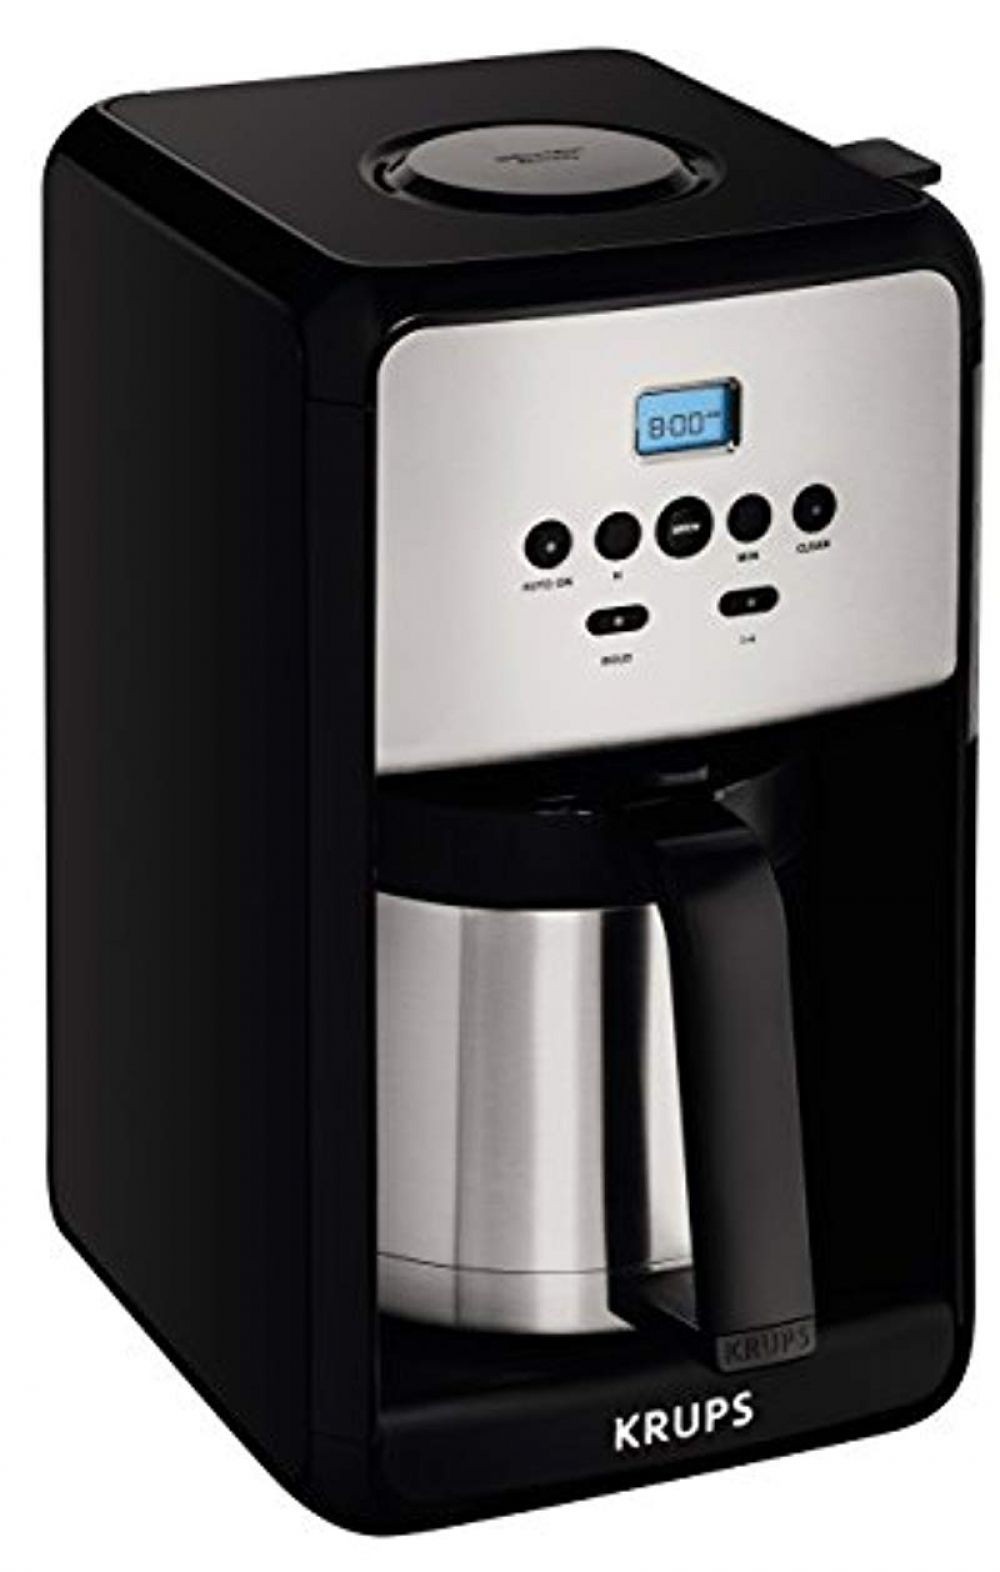 KRUPS ET351 Coffee Maker, Coffee Programmable Maker